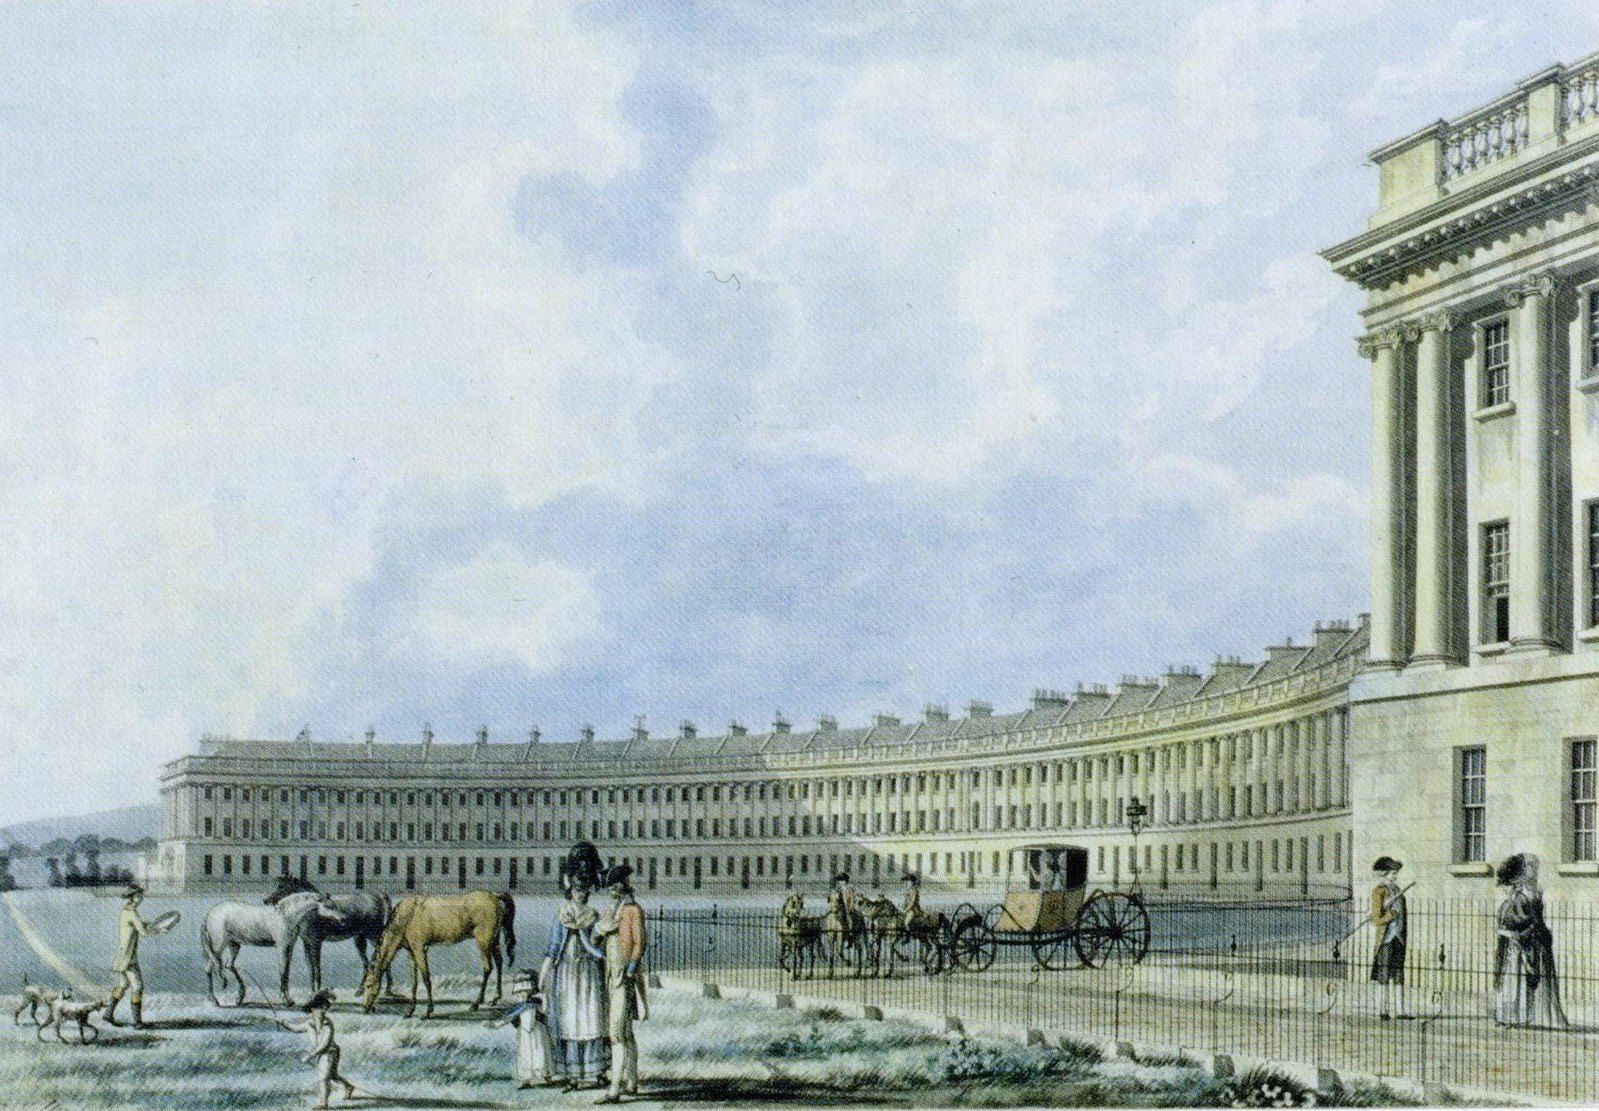 The Royal Crescent in Bath by Thomas Malton 1780